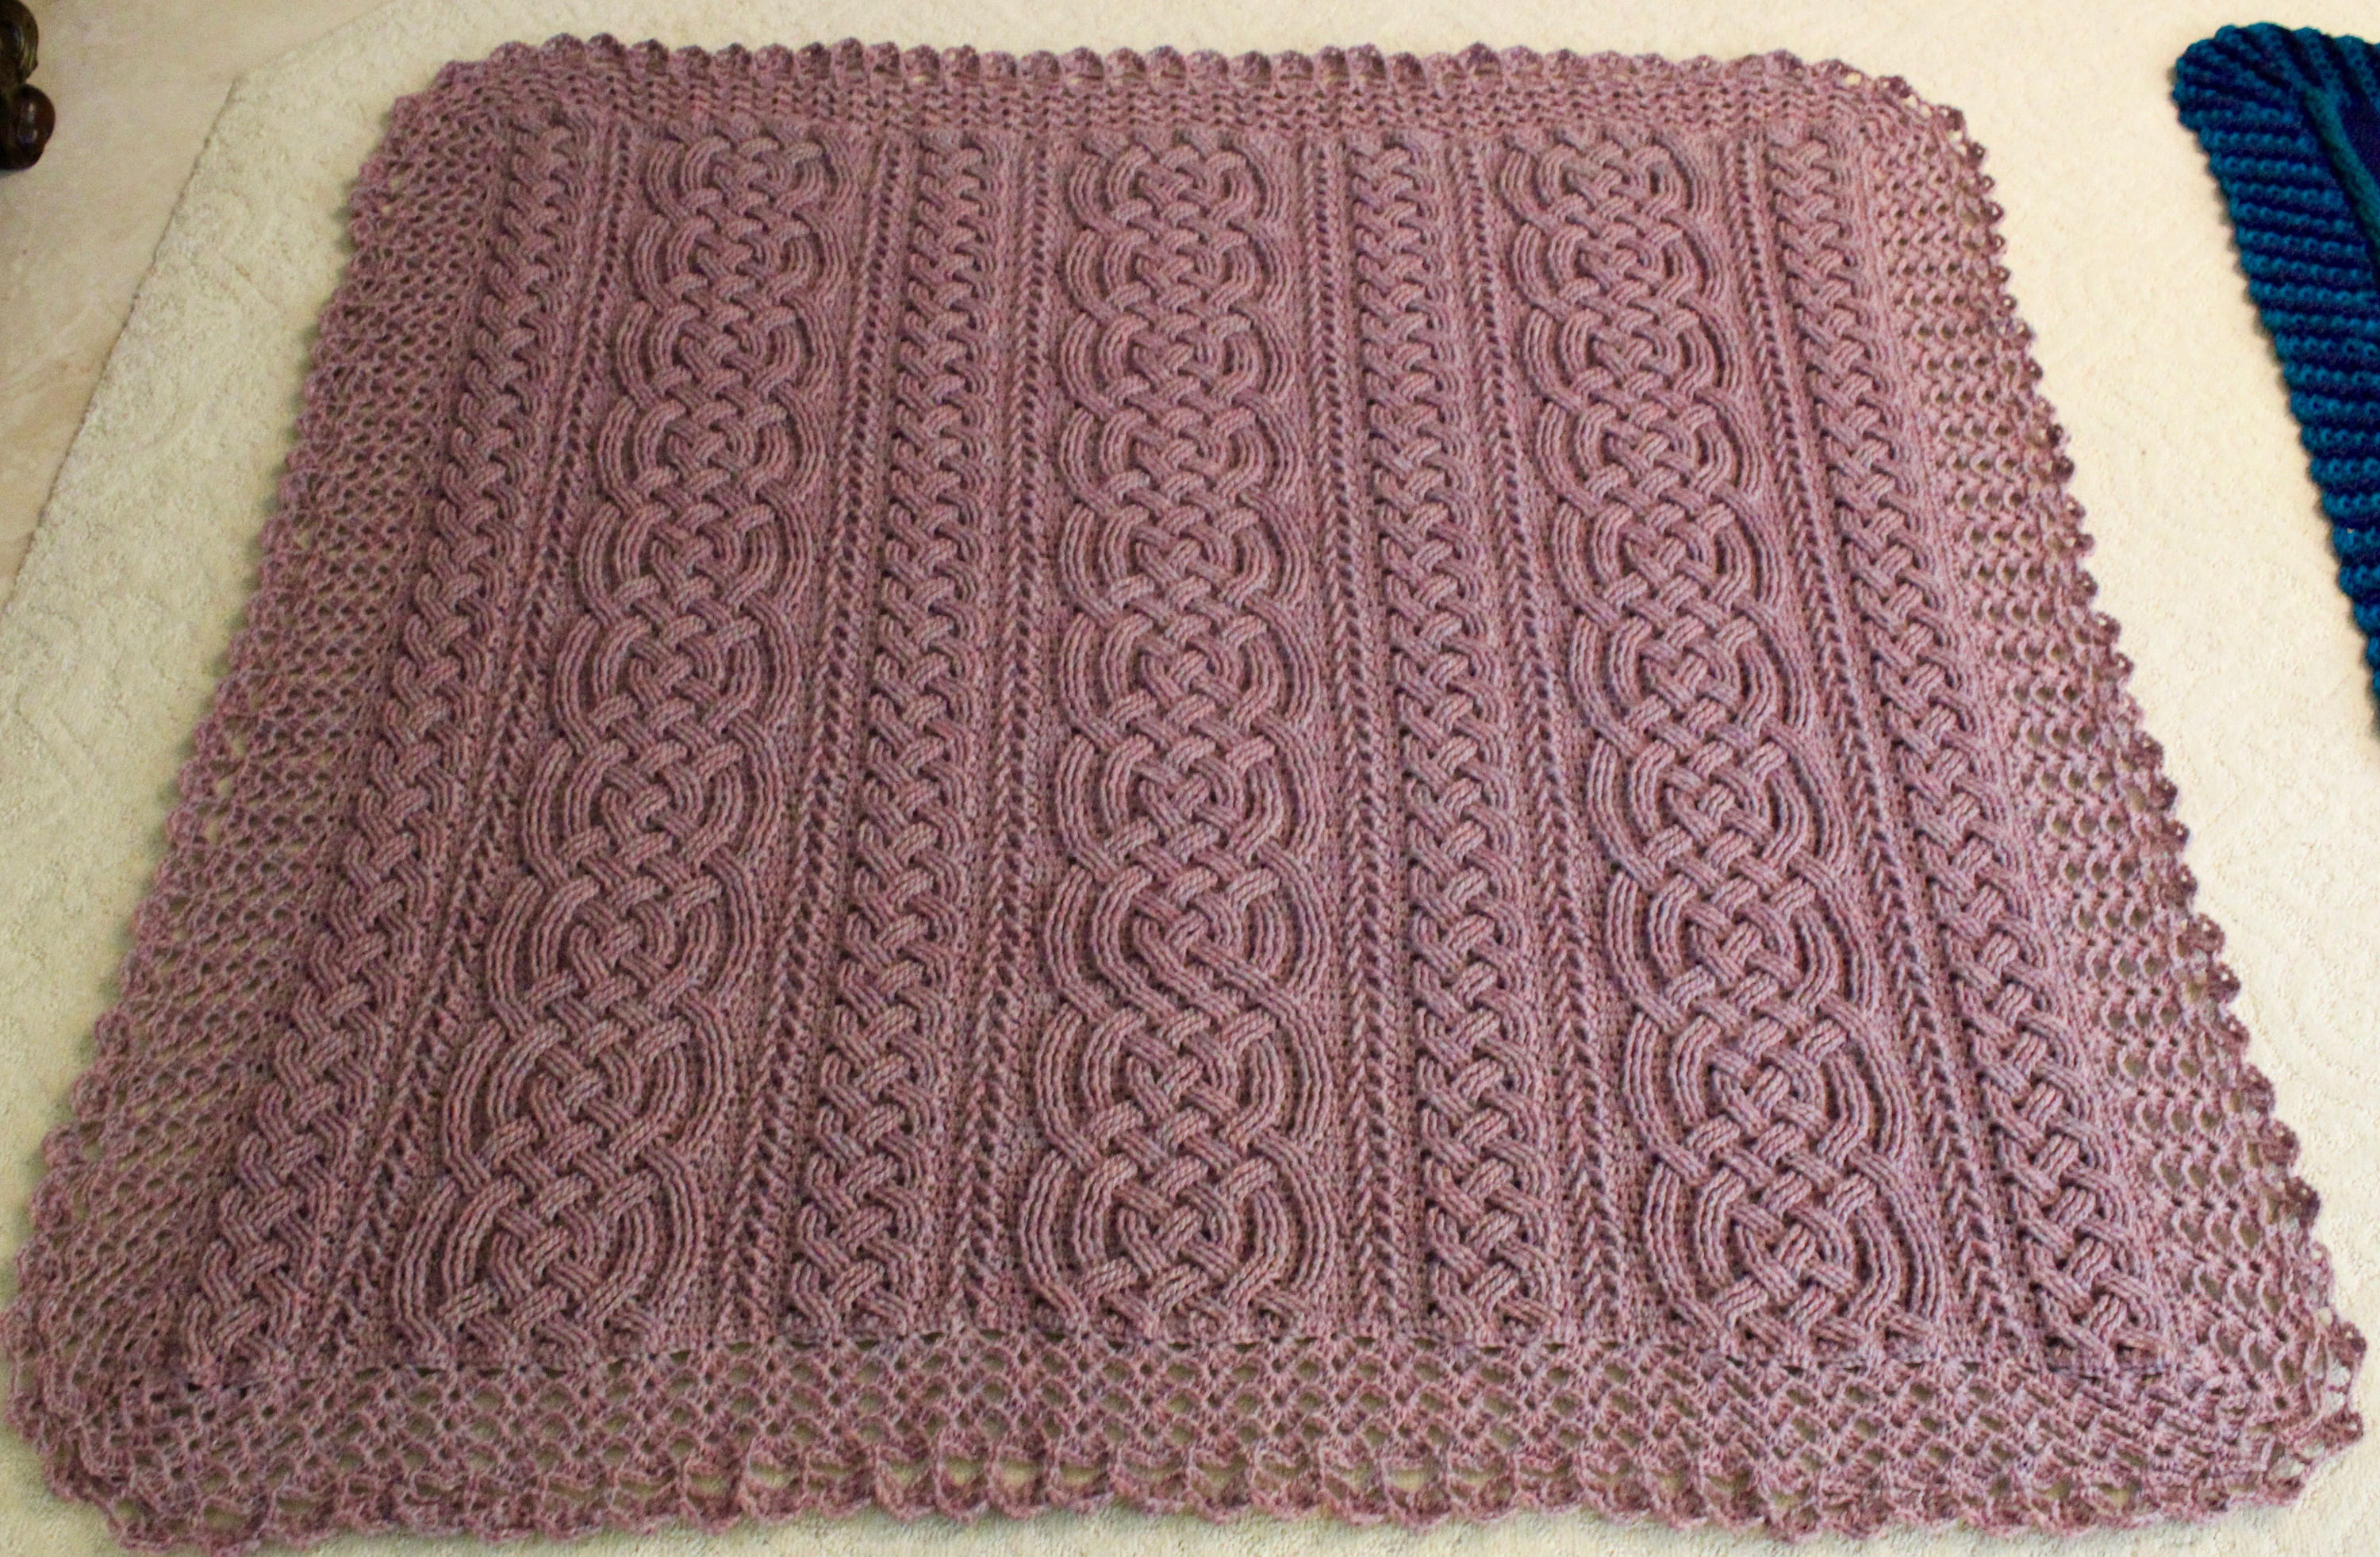 5.5 Crochet Hook Inspirational Crochet Blanket Pattern Aberdeen Braided Cable Blanket Afghan Of Innovative 44 Models 5.5 Crochet Hook